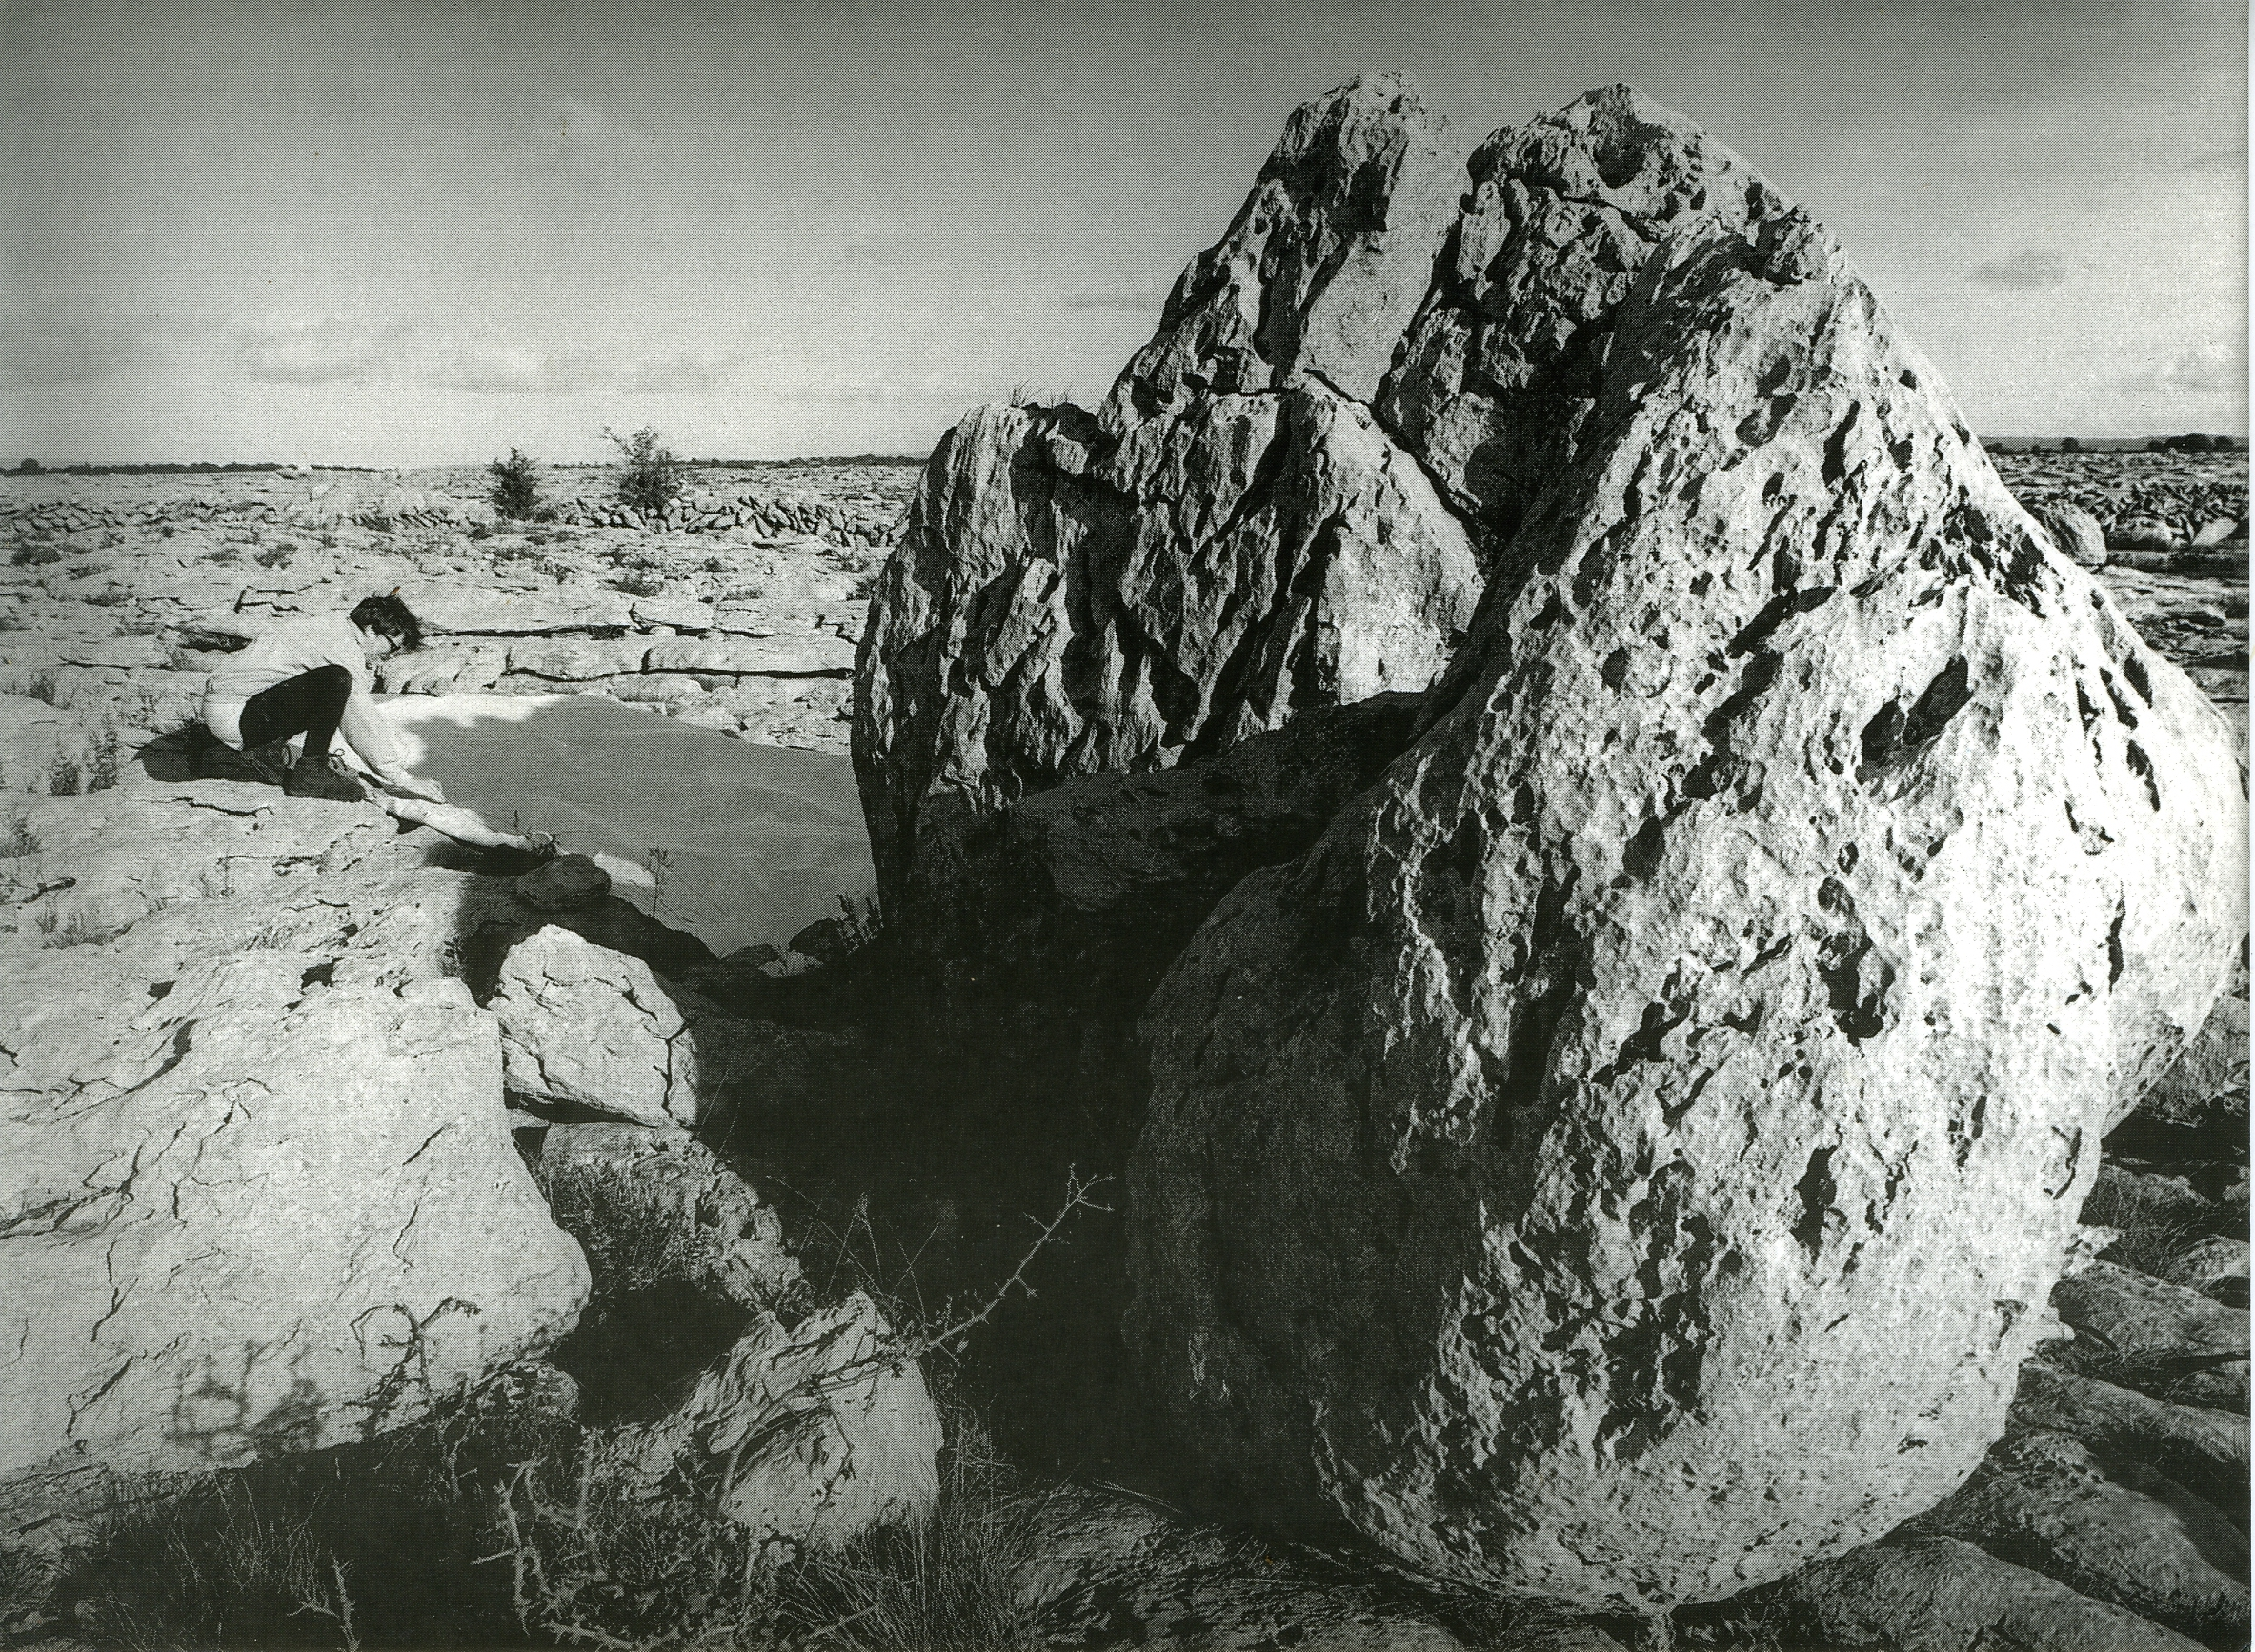 Deirdre O'Mahony, Mapping the shadowline of erratic boulders, the Burren County Clare, 1995. Photograph Veronica Nicholson.